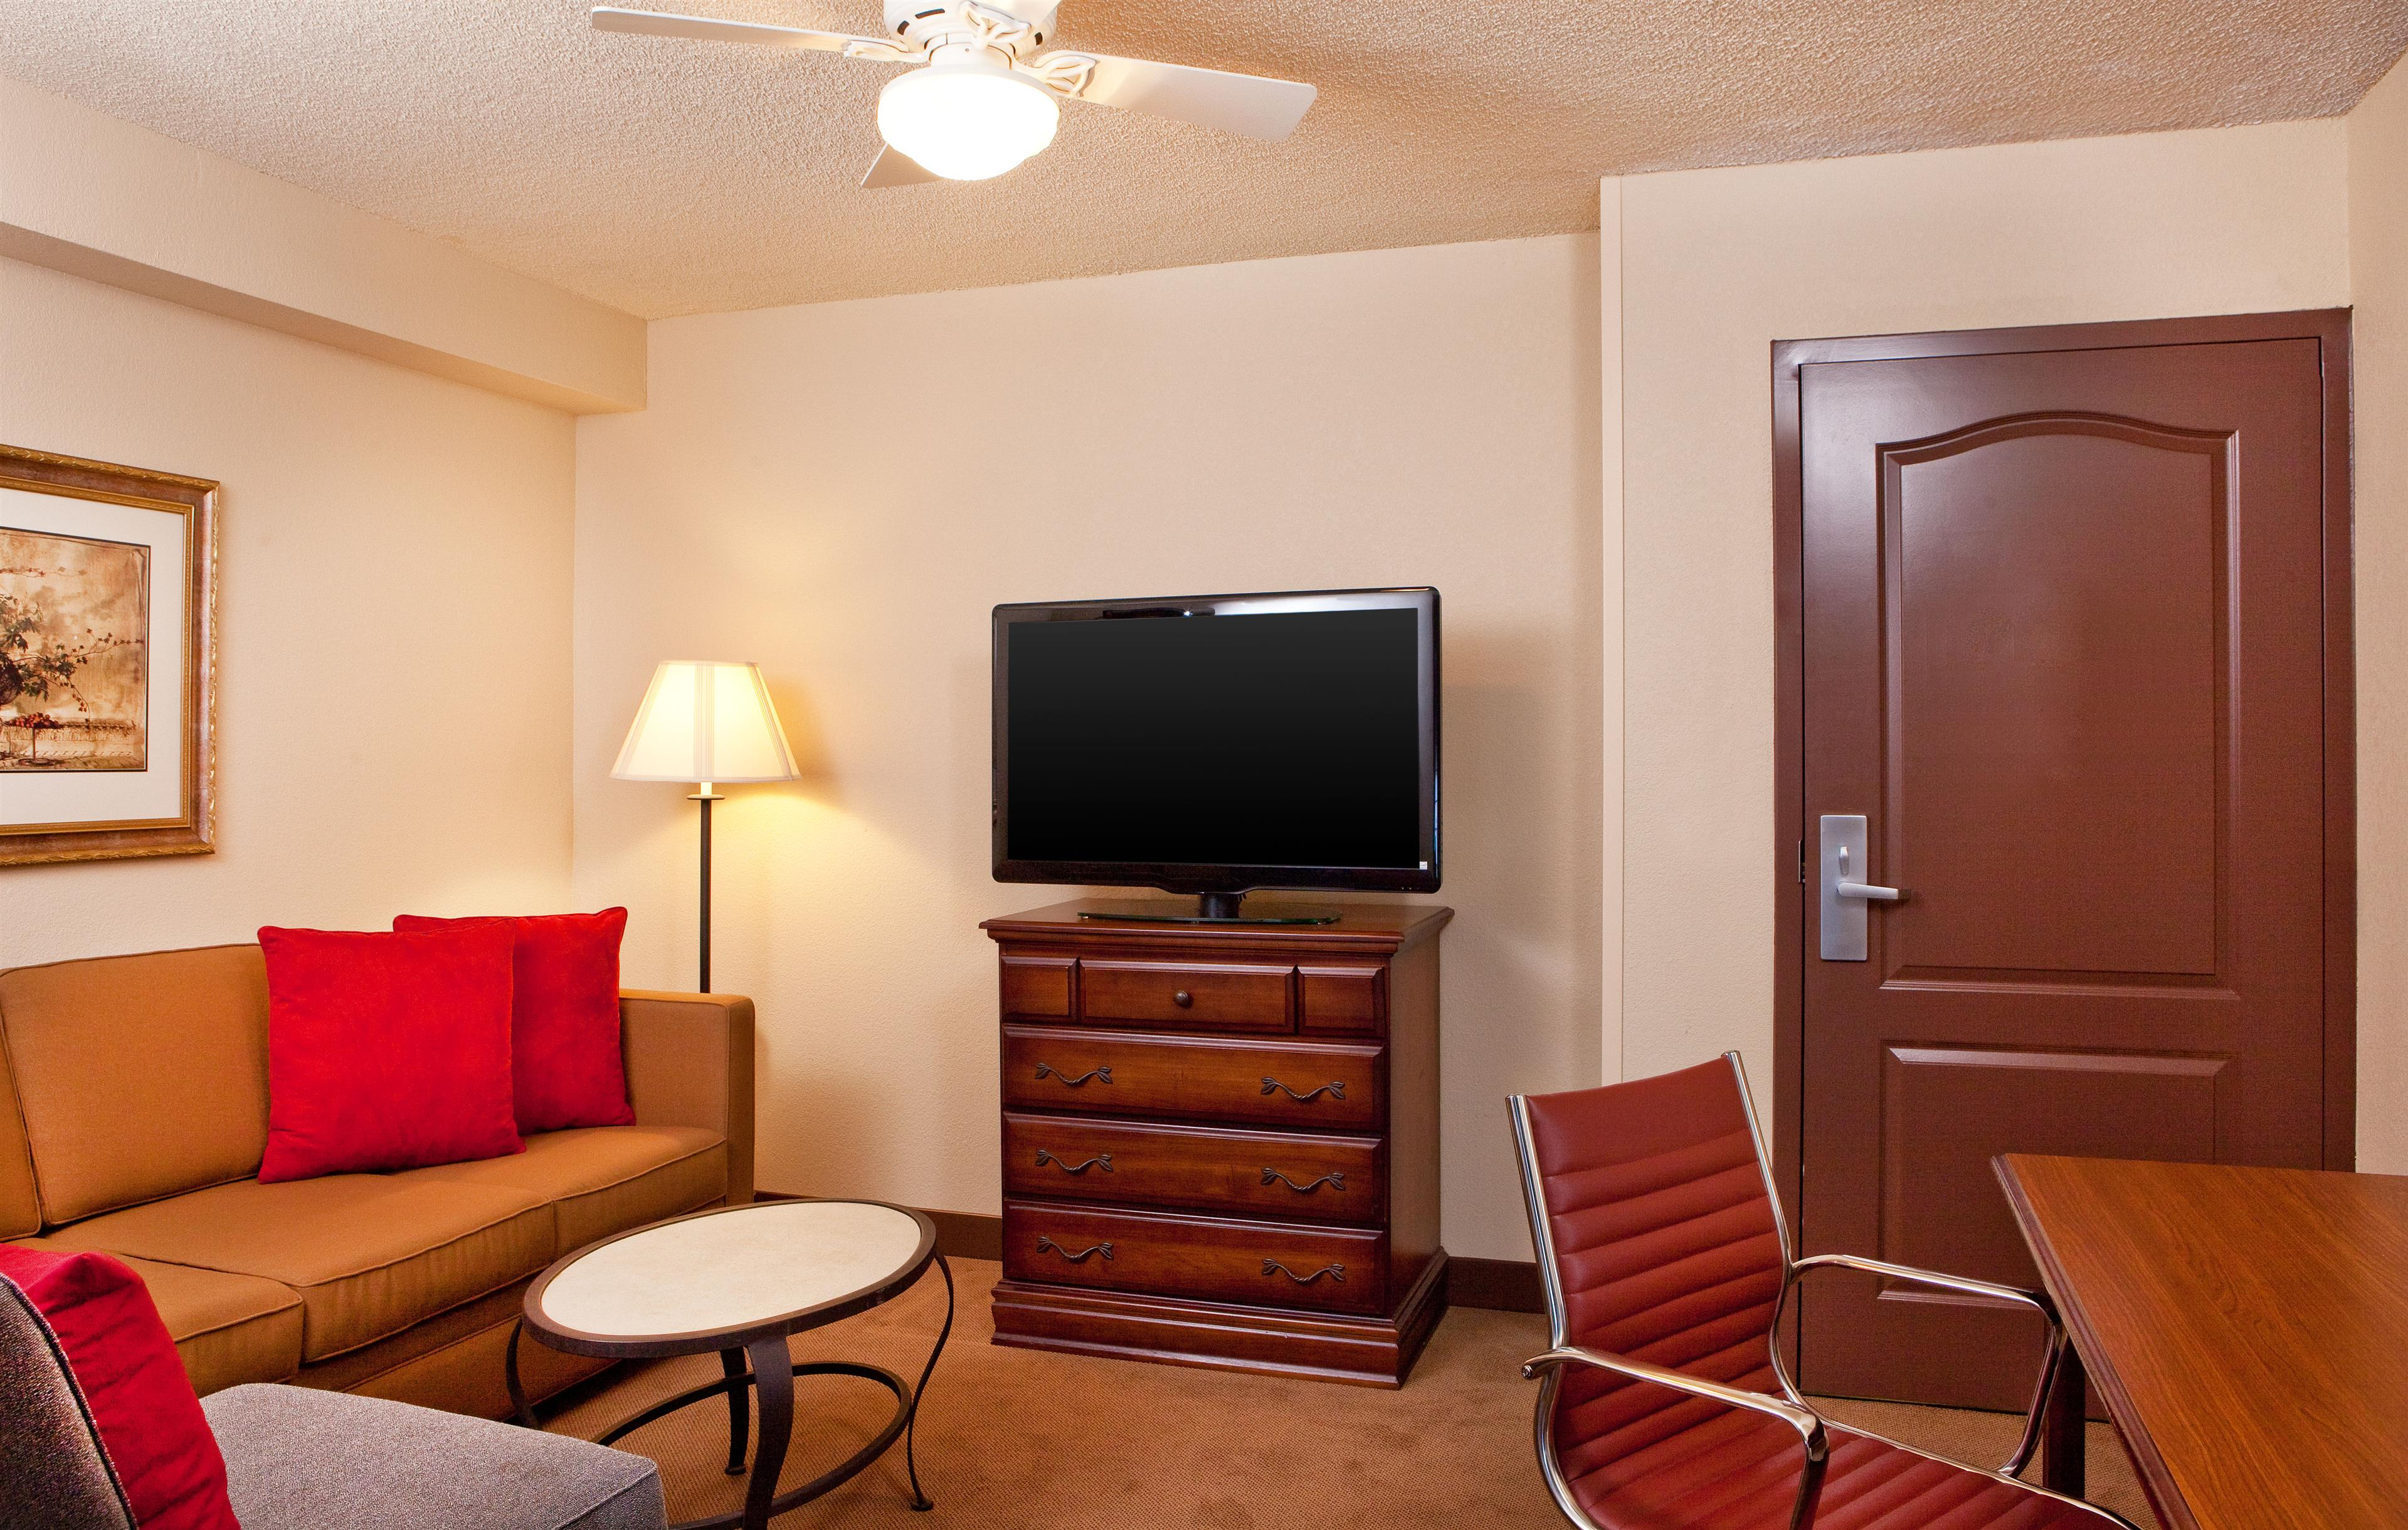 Four Points by Sheraton Knoxville Cumberland House Hotel image 6